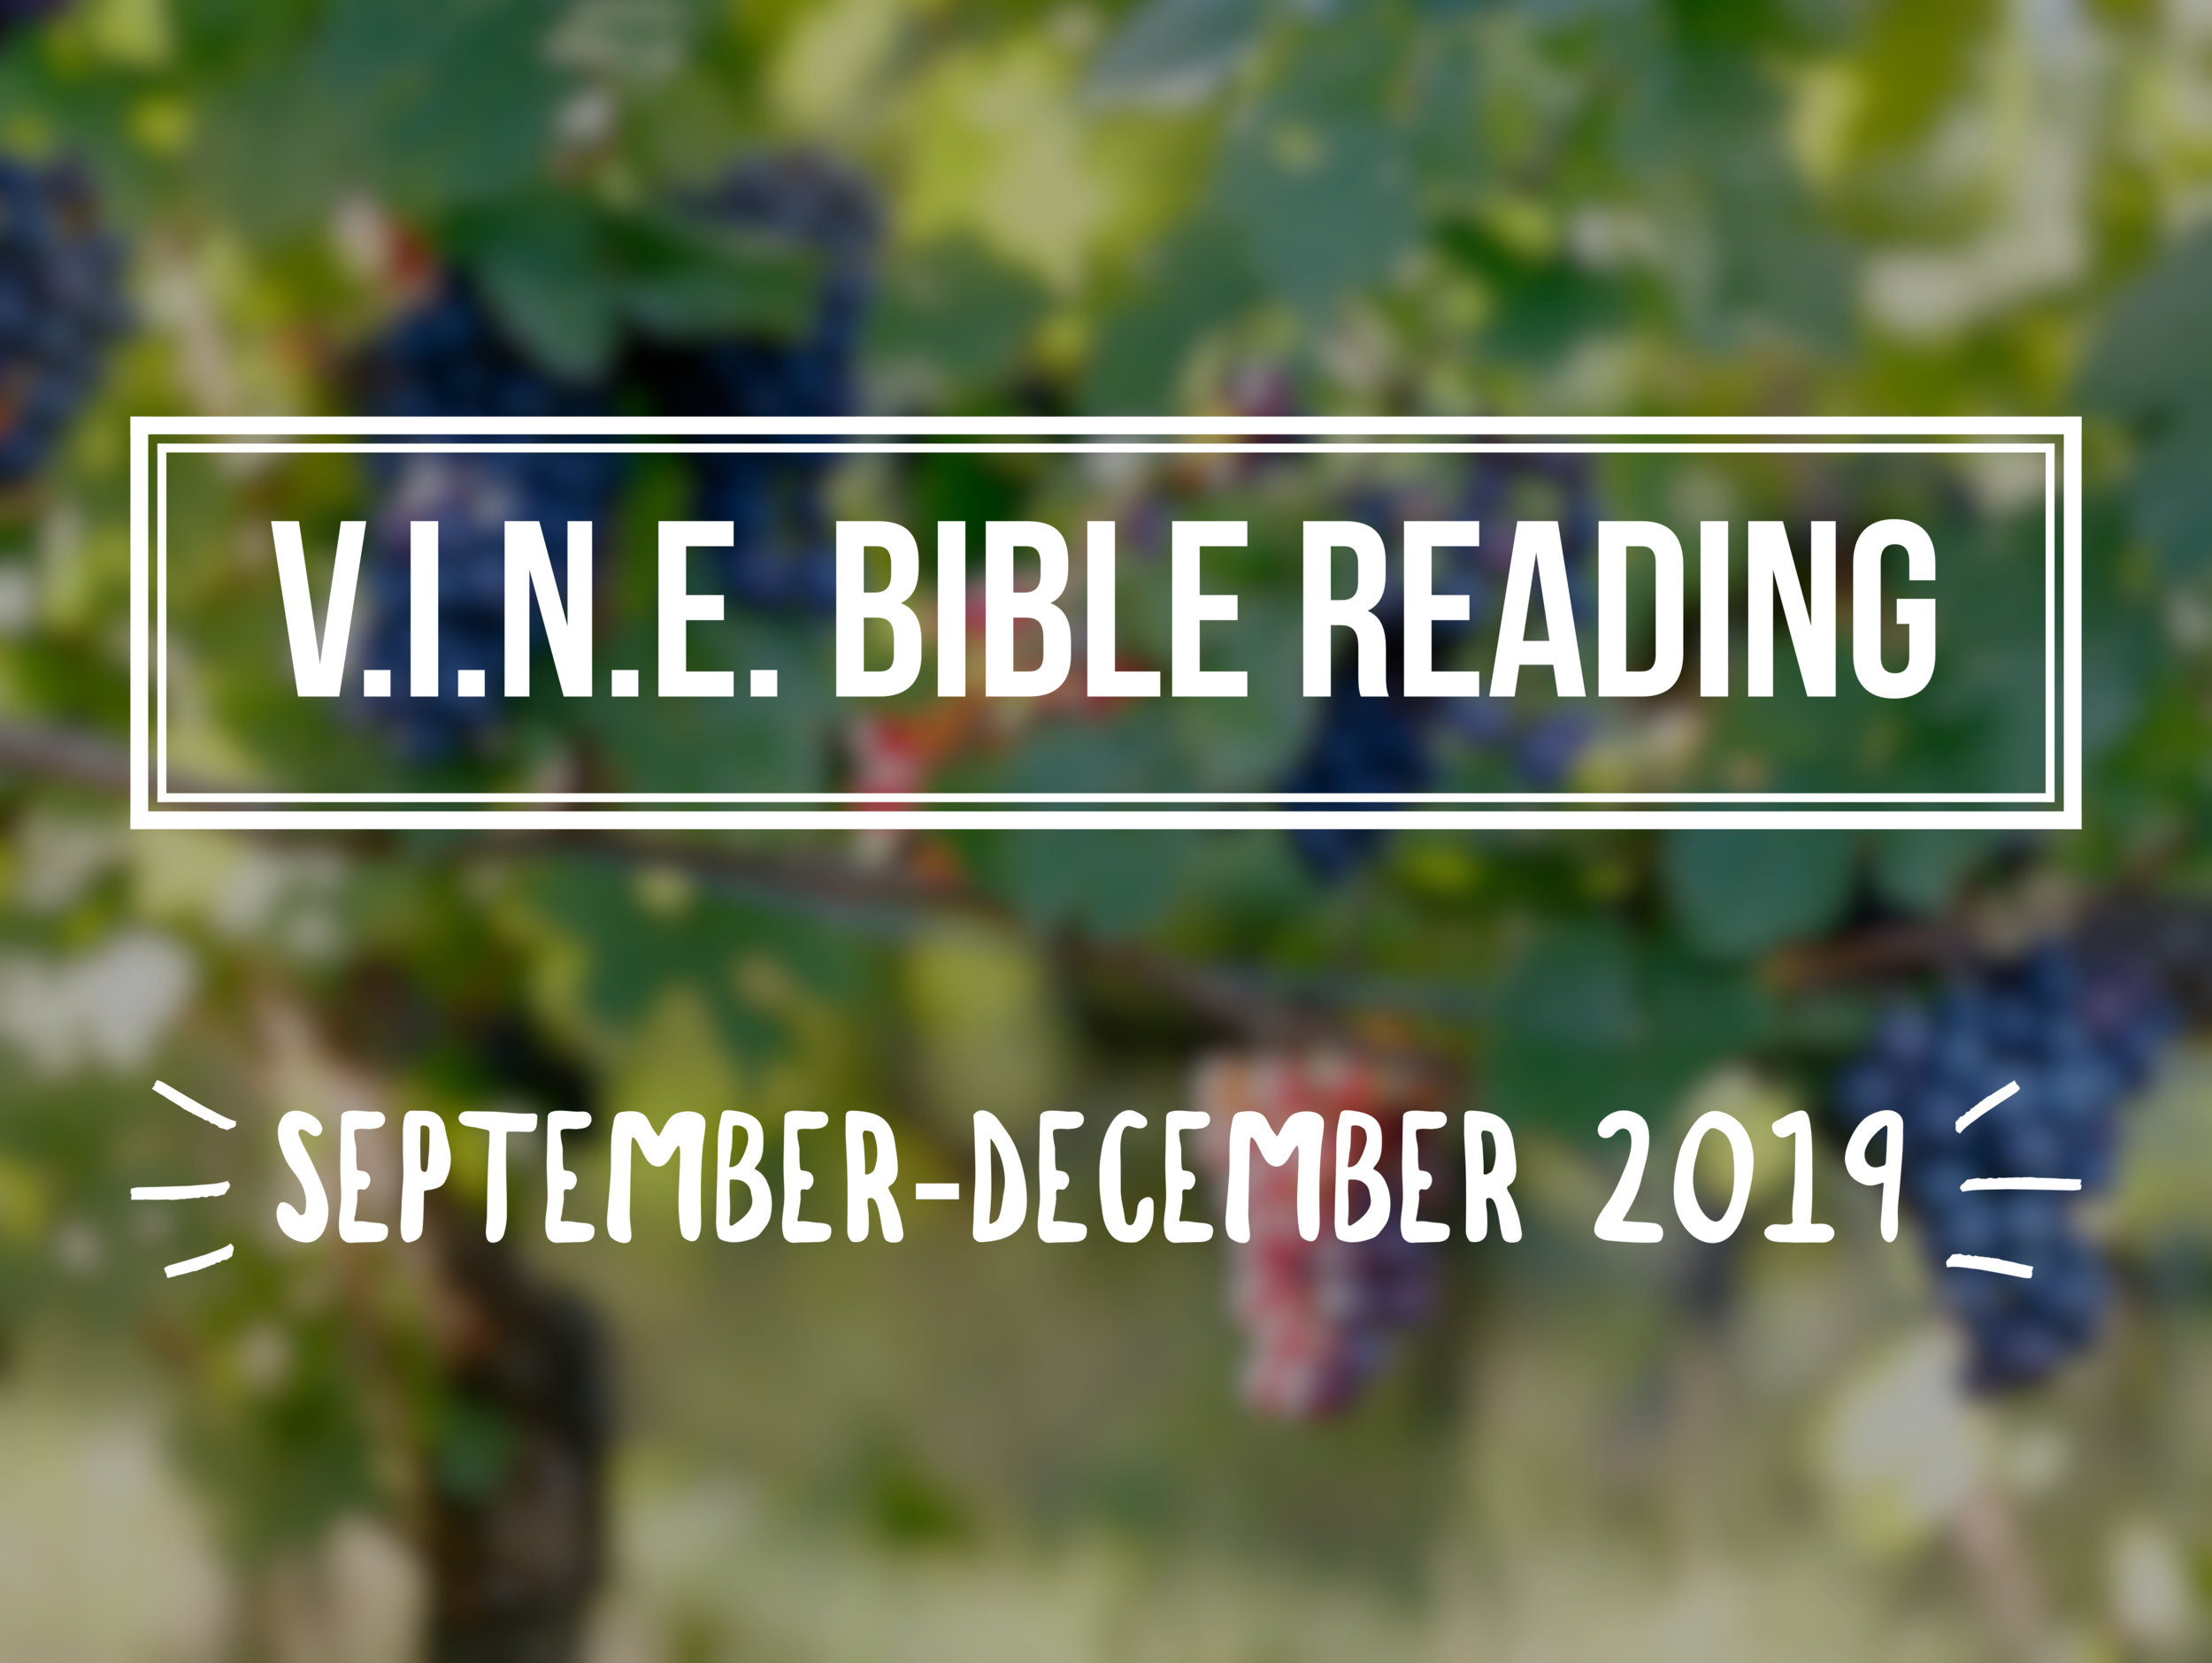 V.I.N.E. BIBLE READING - Download the V.I.N.E. Bible Reading for September-December 2019! Click the button below to get started!